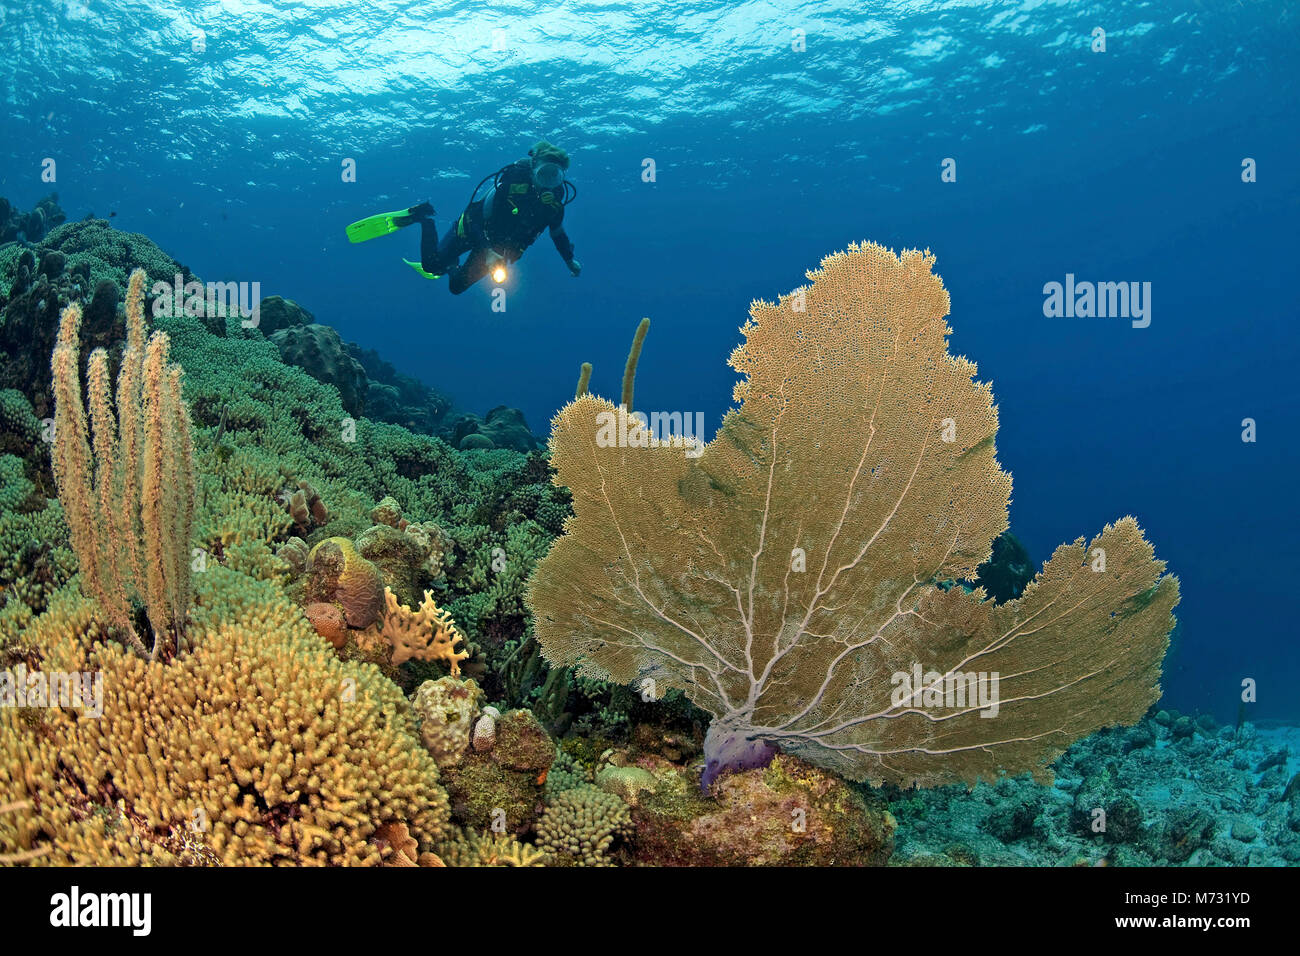 Scuba diver in caribbean coral reef with a giant seafan (Gorgonia ventalina), Curacao, Netherland Antilles, Caribbean, - Stock Image